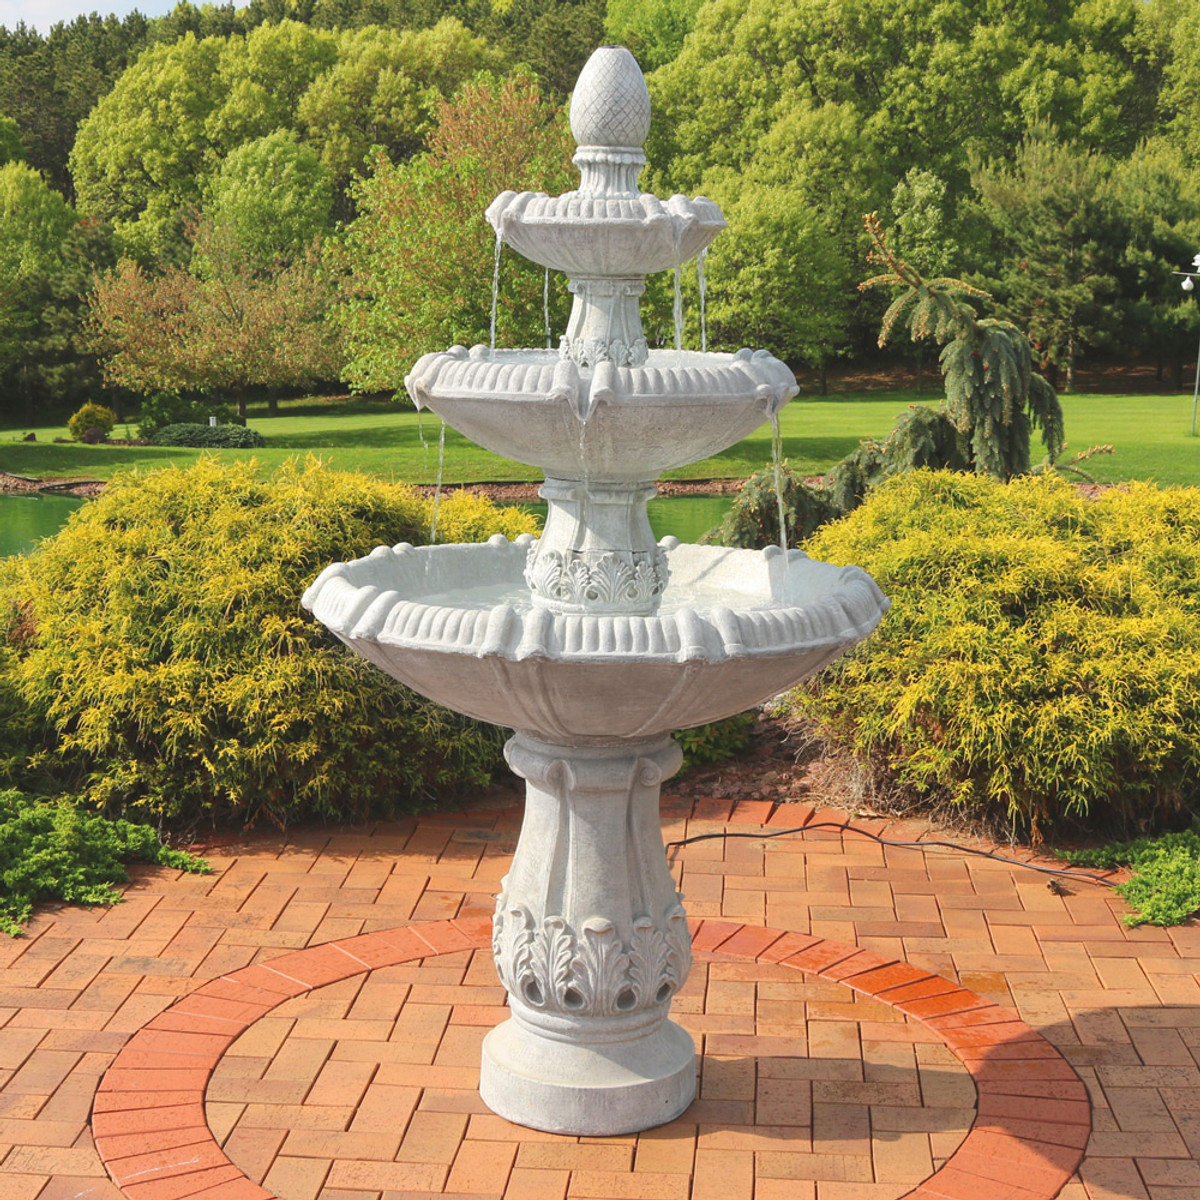 Sunnydaze 3 Tier Gothic Finial Outdoor Garden Water Fountain 73